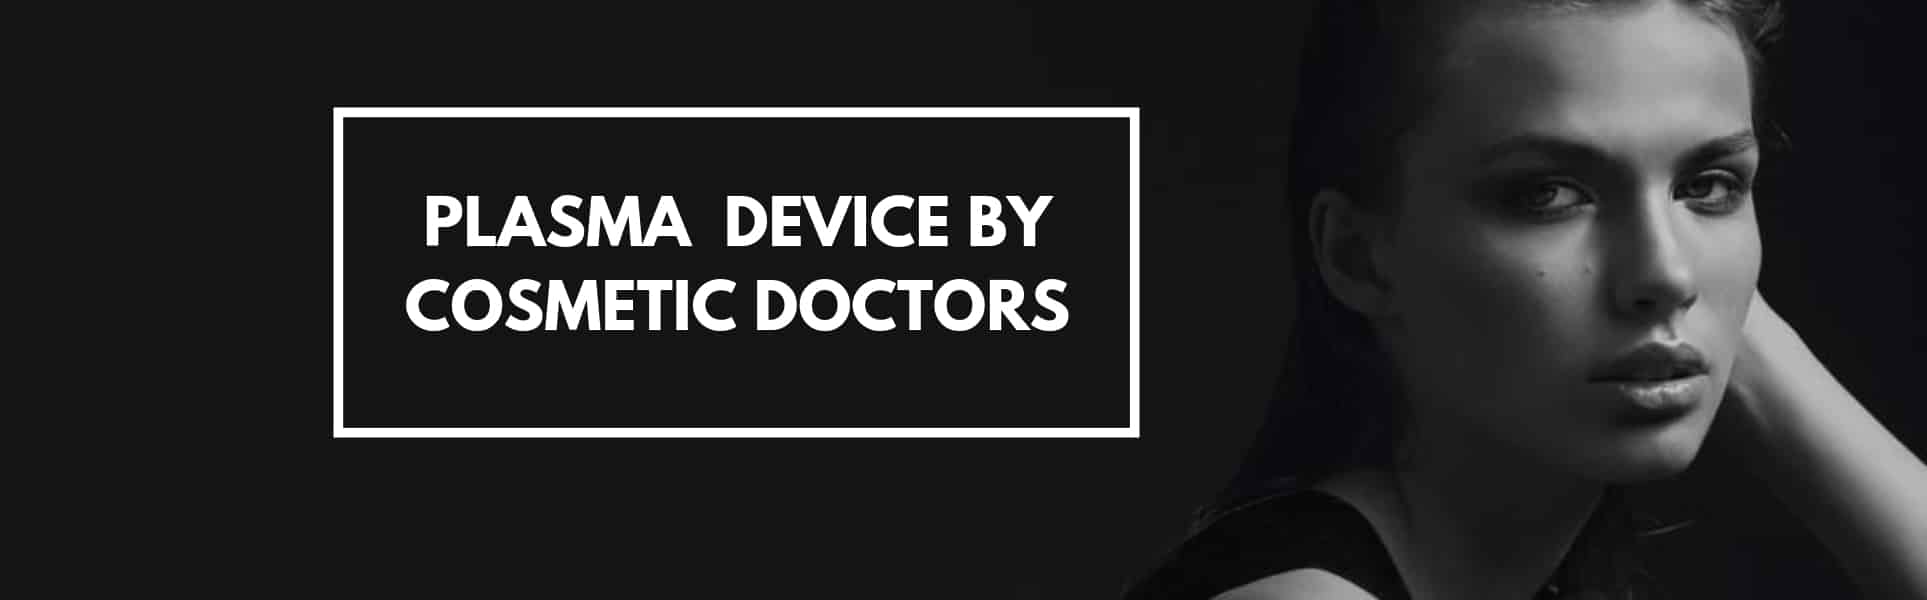 Plasma Device By Cosmetic Doctors